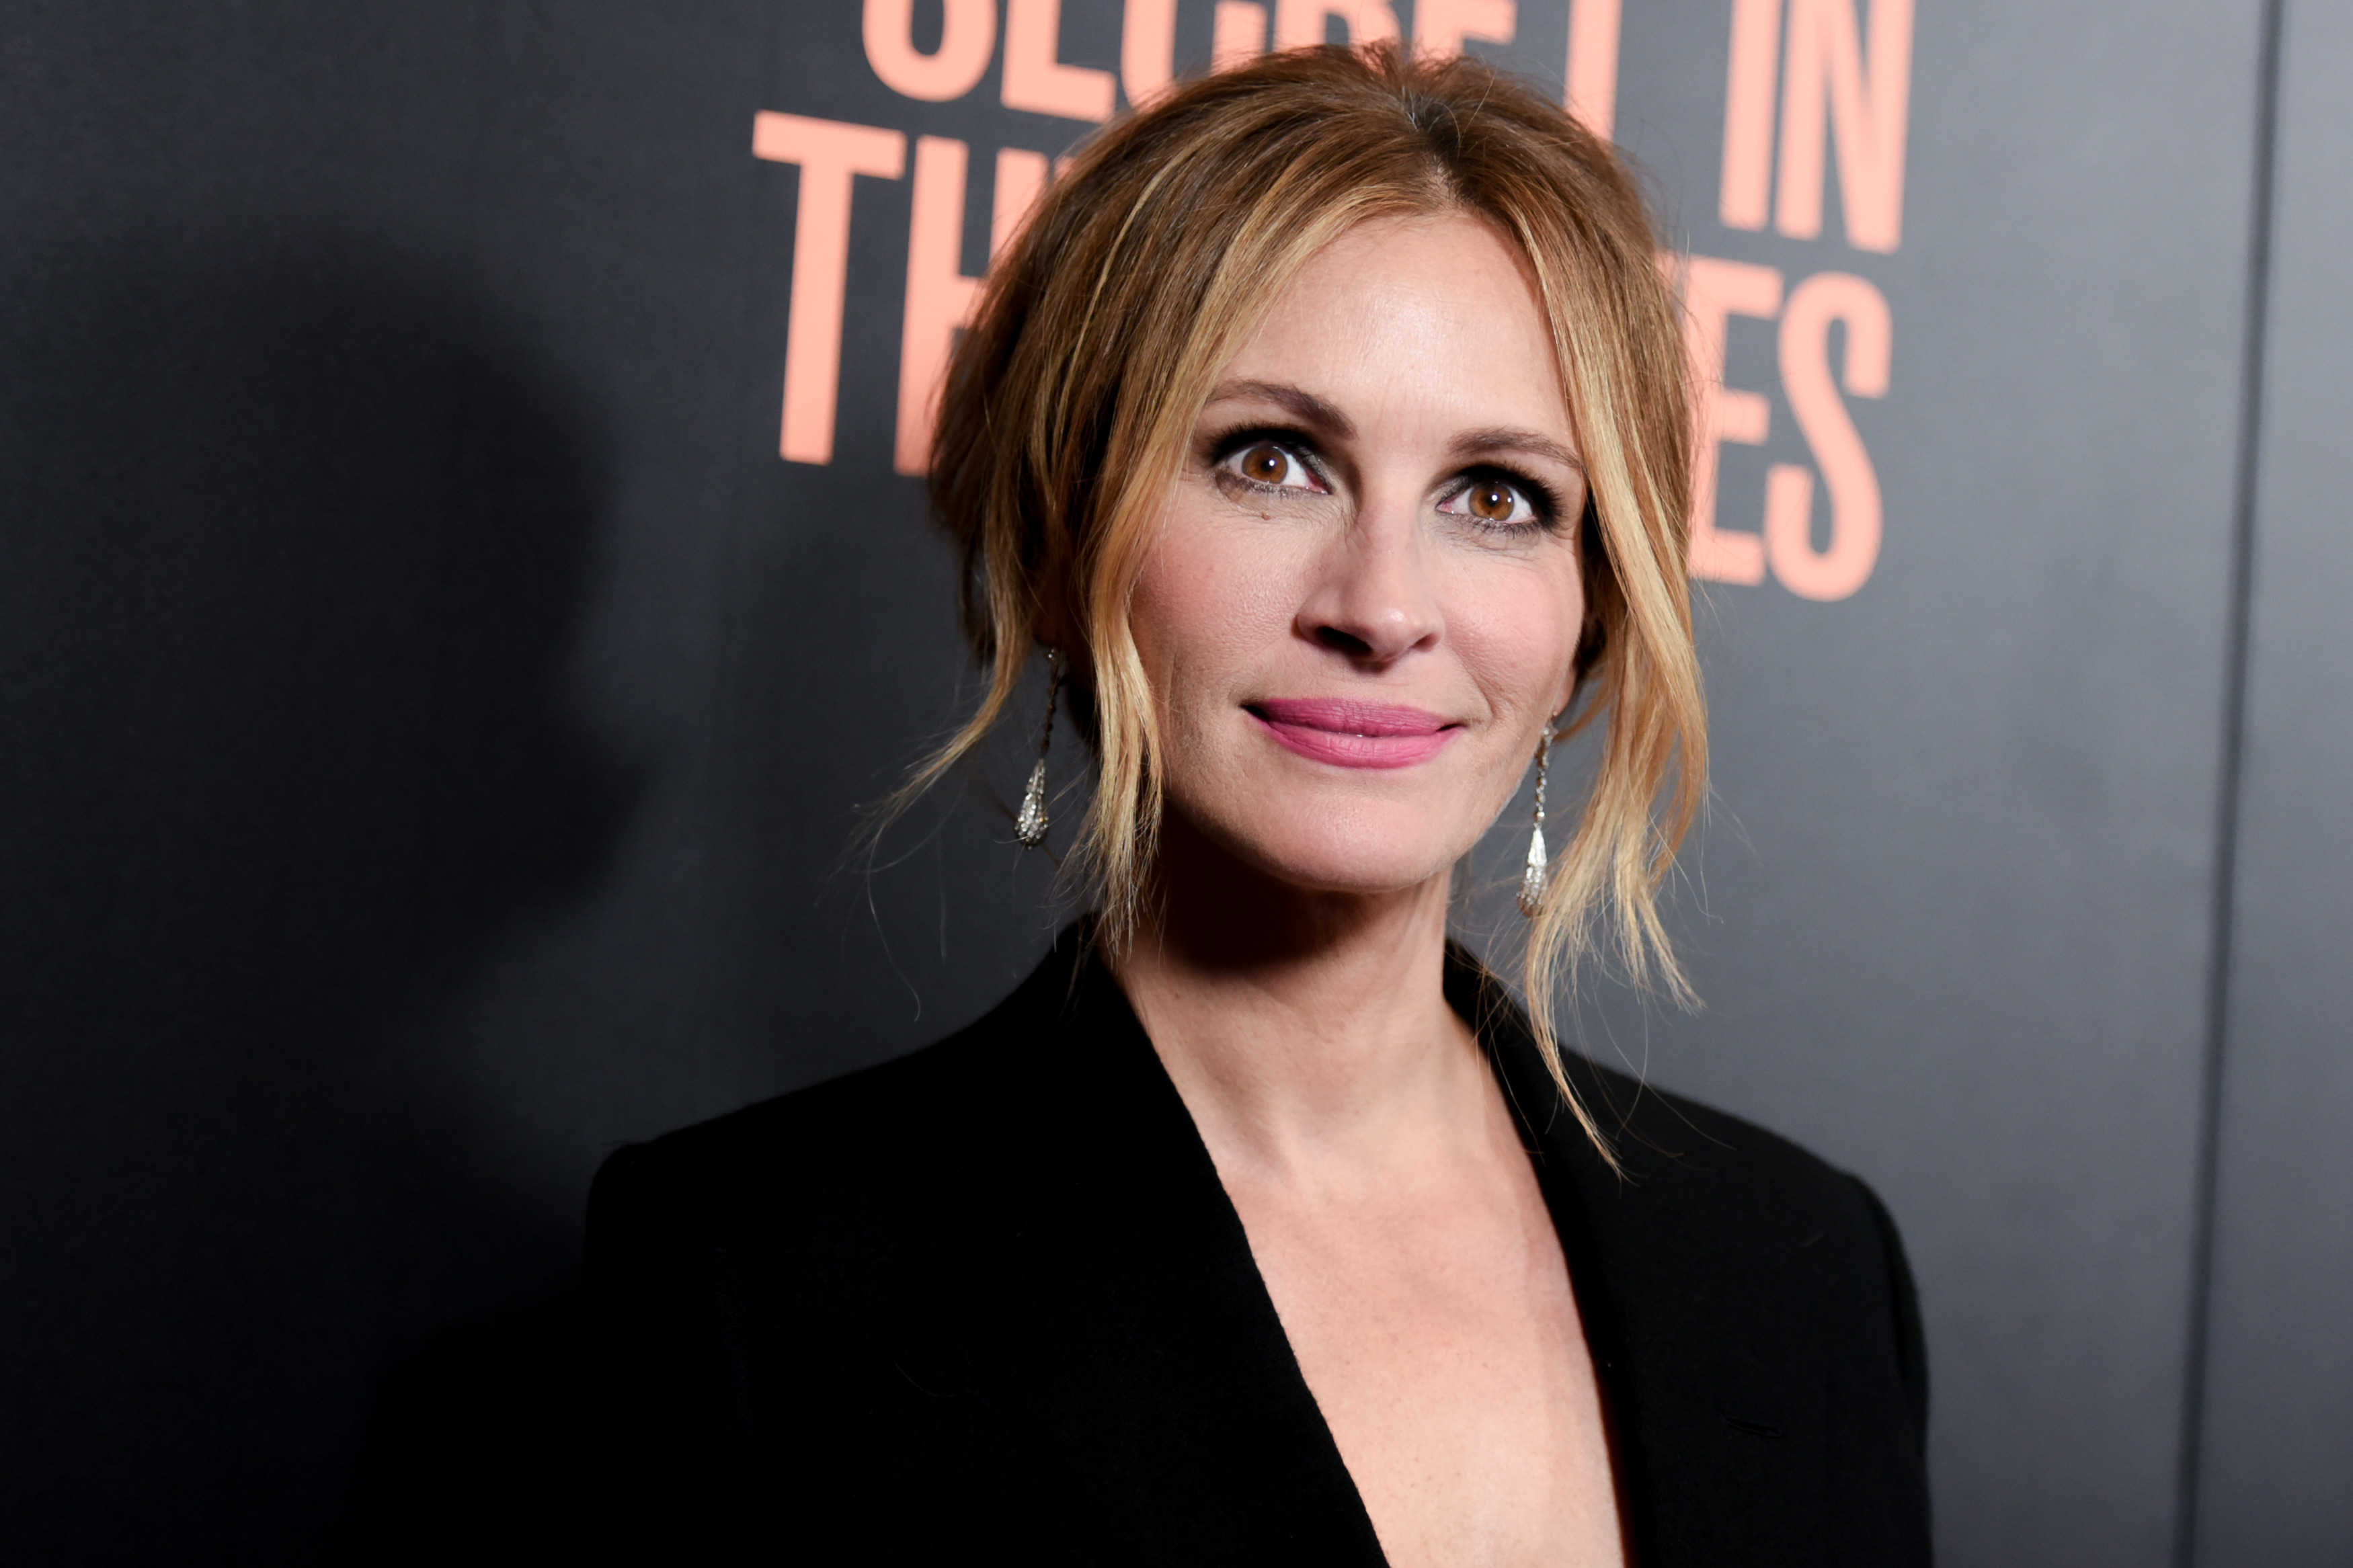 PA 24729750 Heres How Much Julia Roberts Makes In One Day